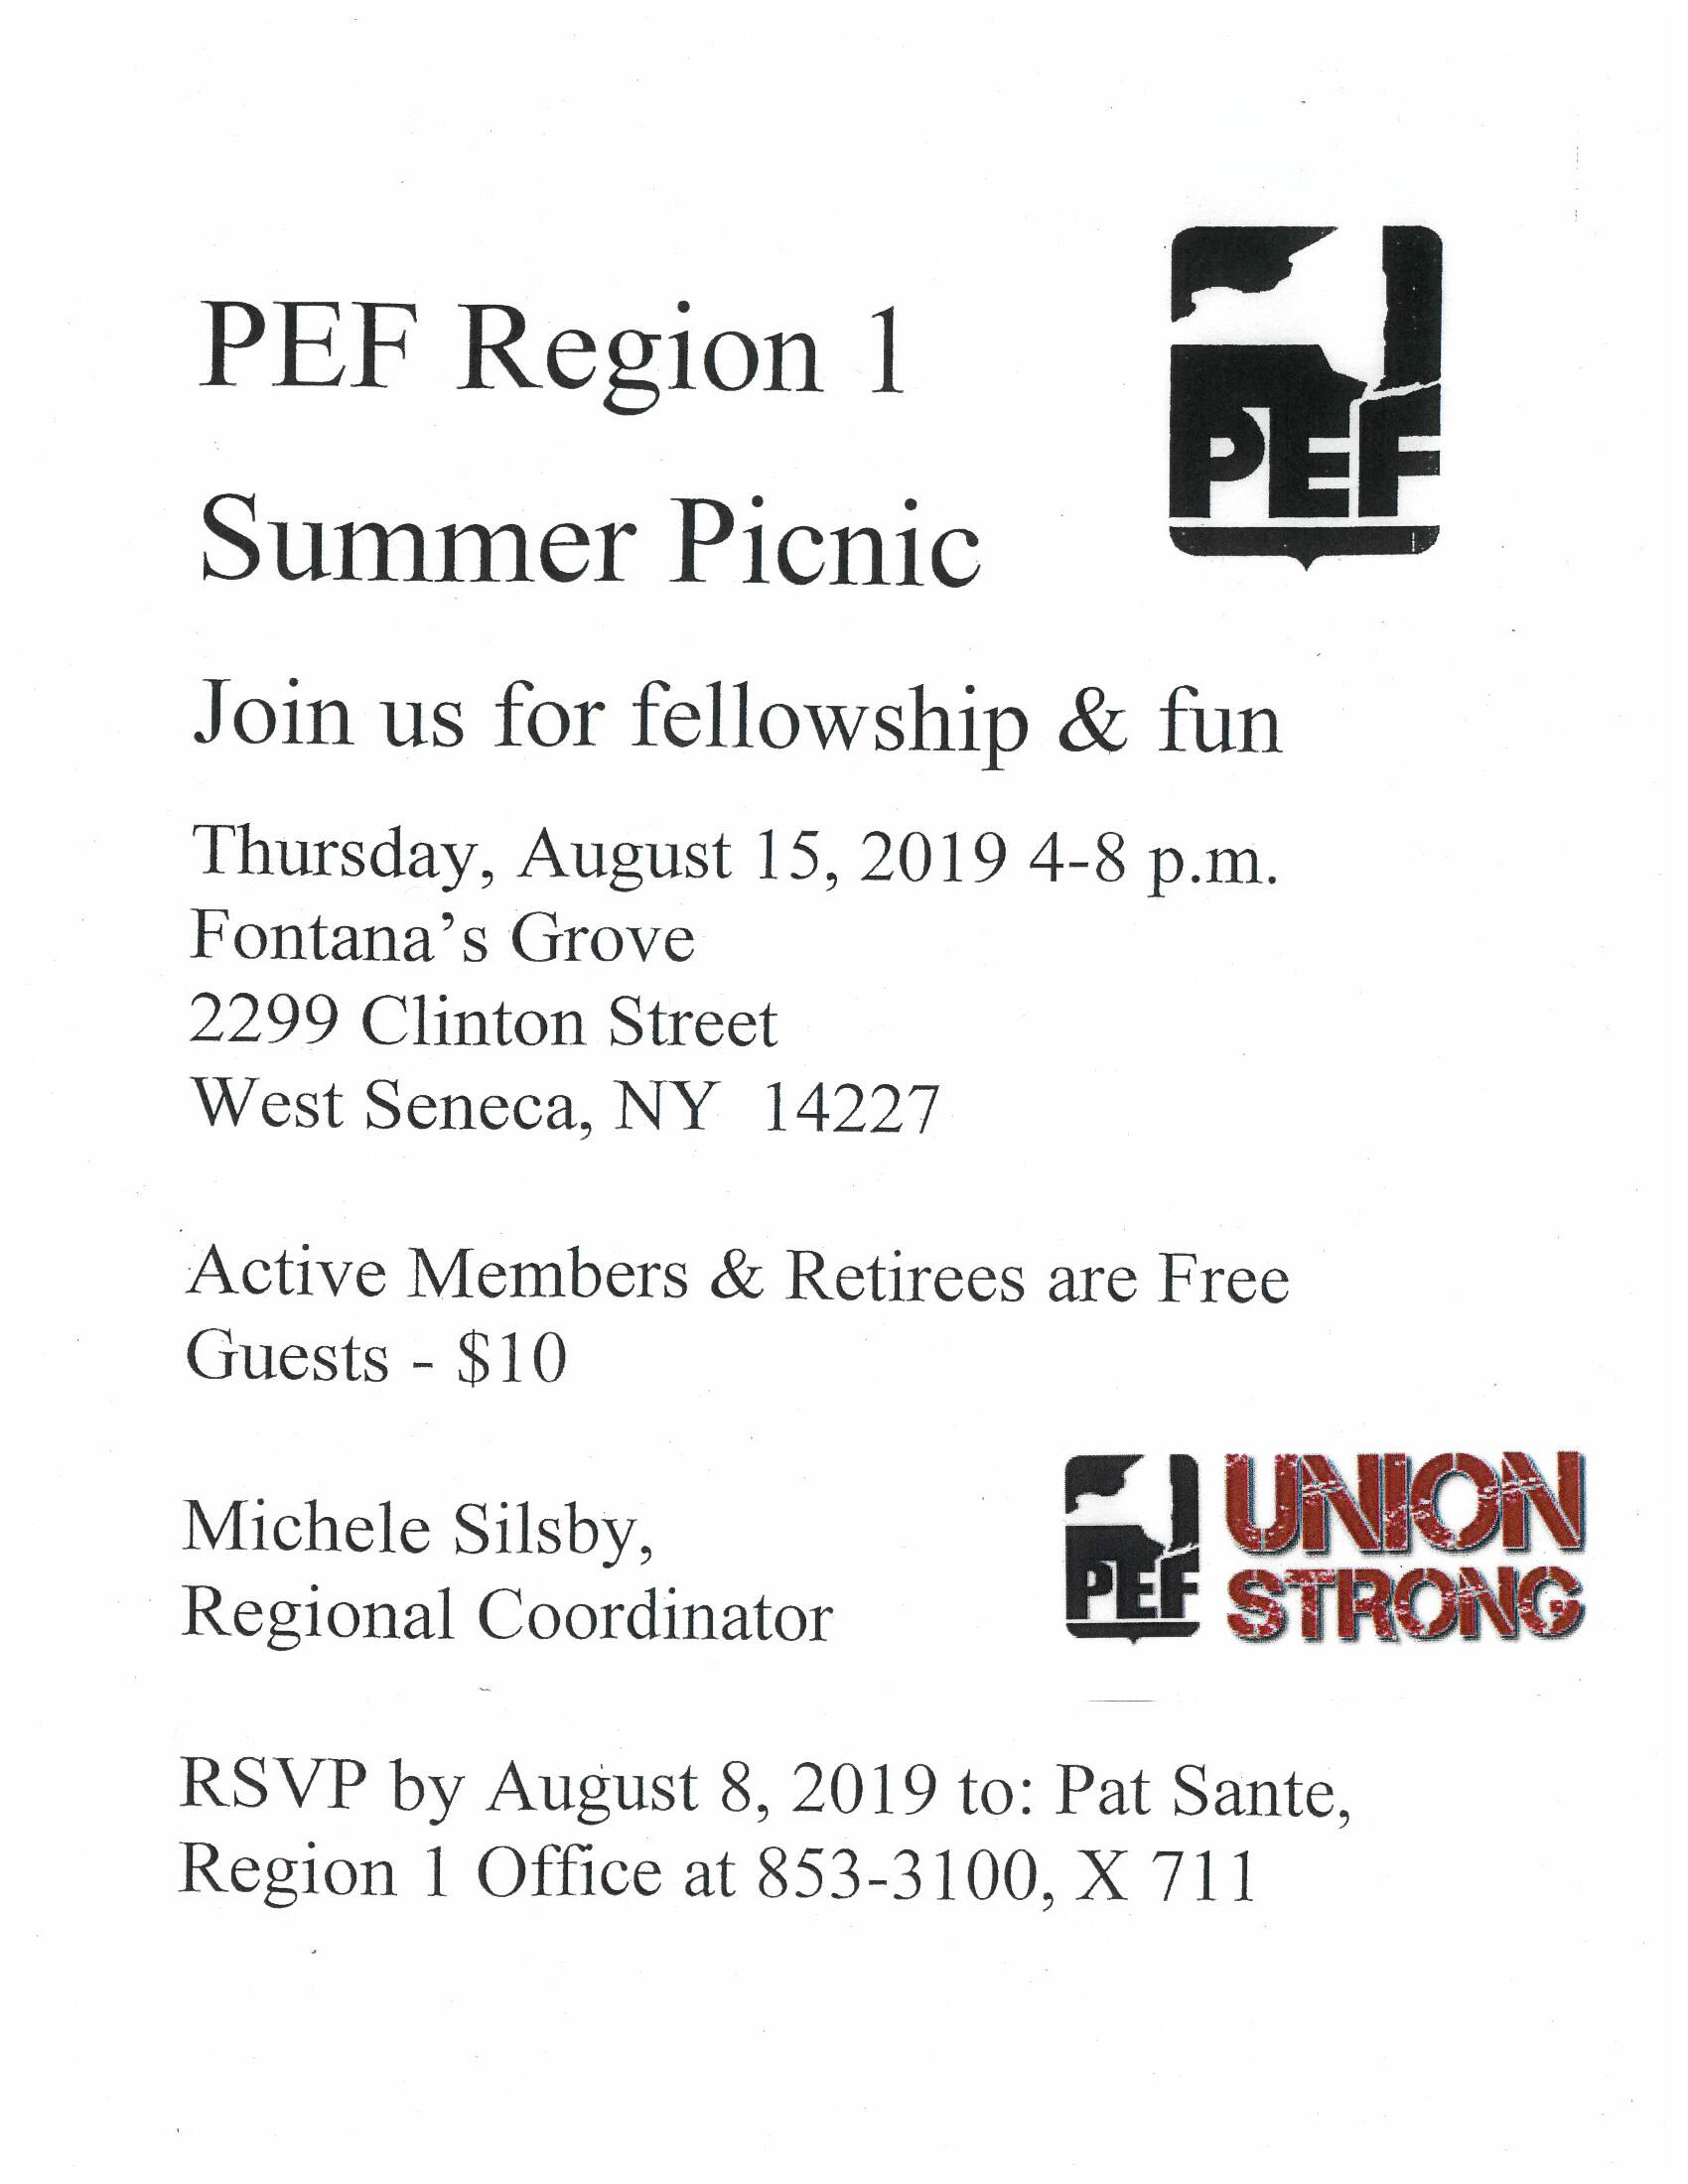 Region 1 Summer Picnic 2019.jpg